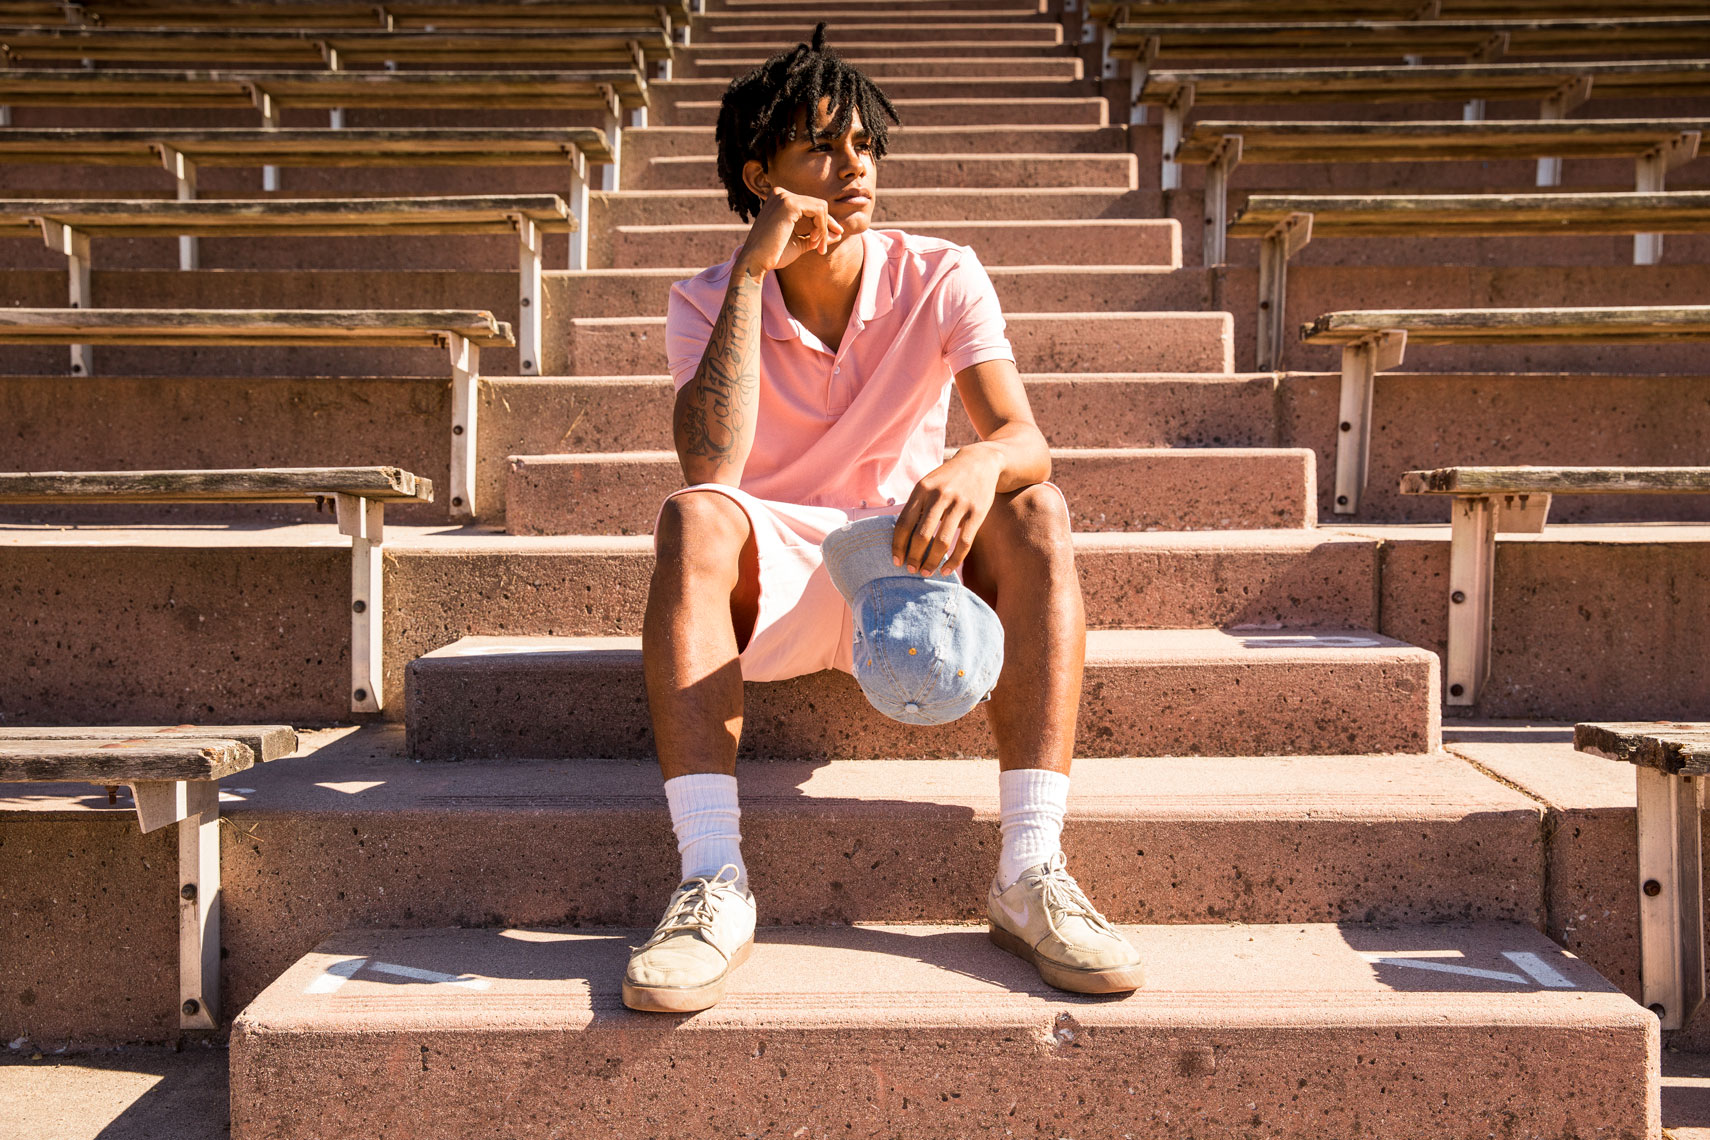 Portrait of boy wearing pink sitting on stadium steps